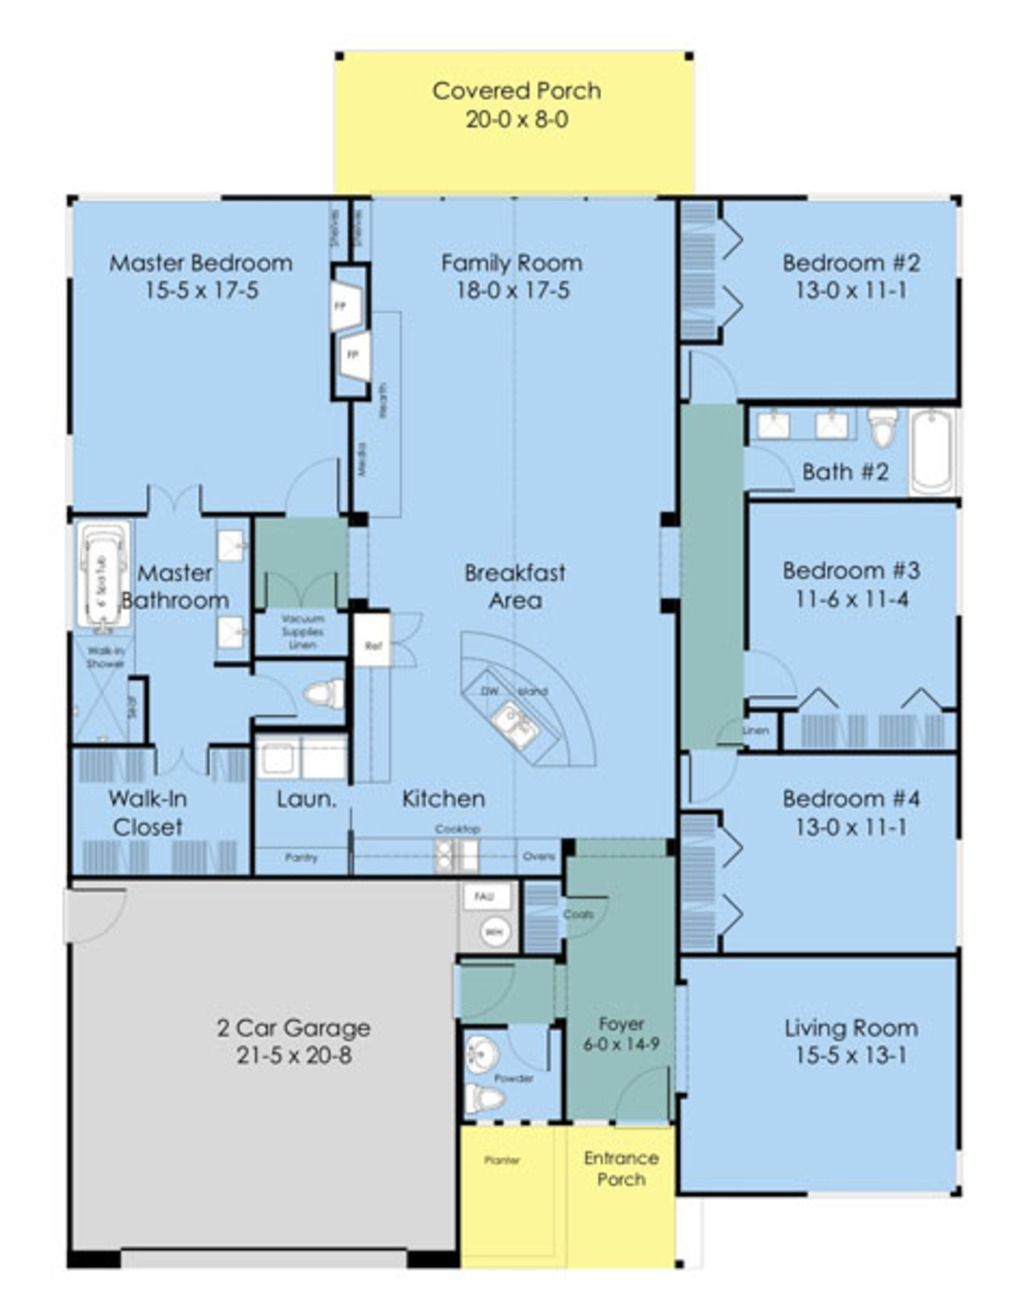 Ranch Style House Plan 4 Beds 2 5 Baths 2352 Sq Ft Plan 489 3 Ranch Style House Plans House Floor Plans Floor Plans